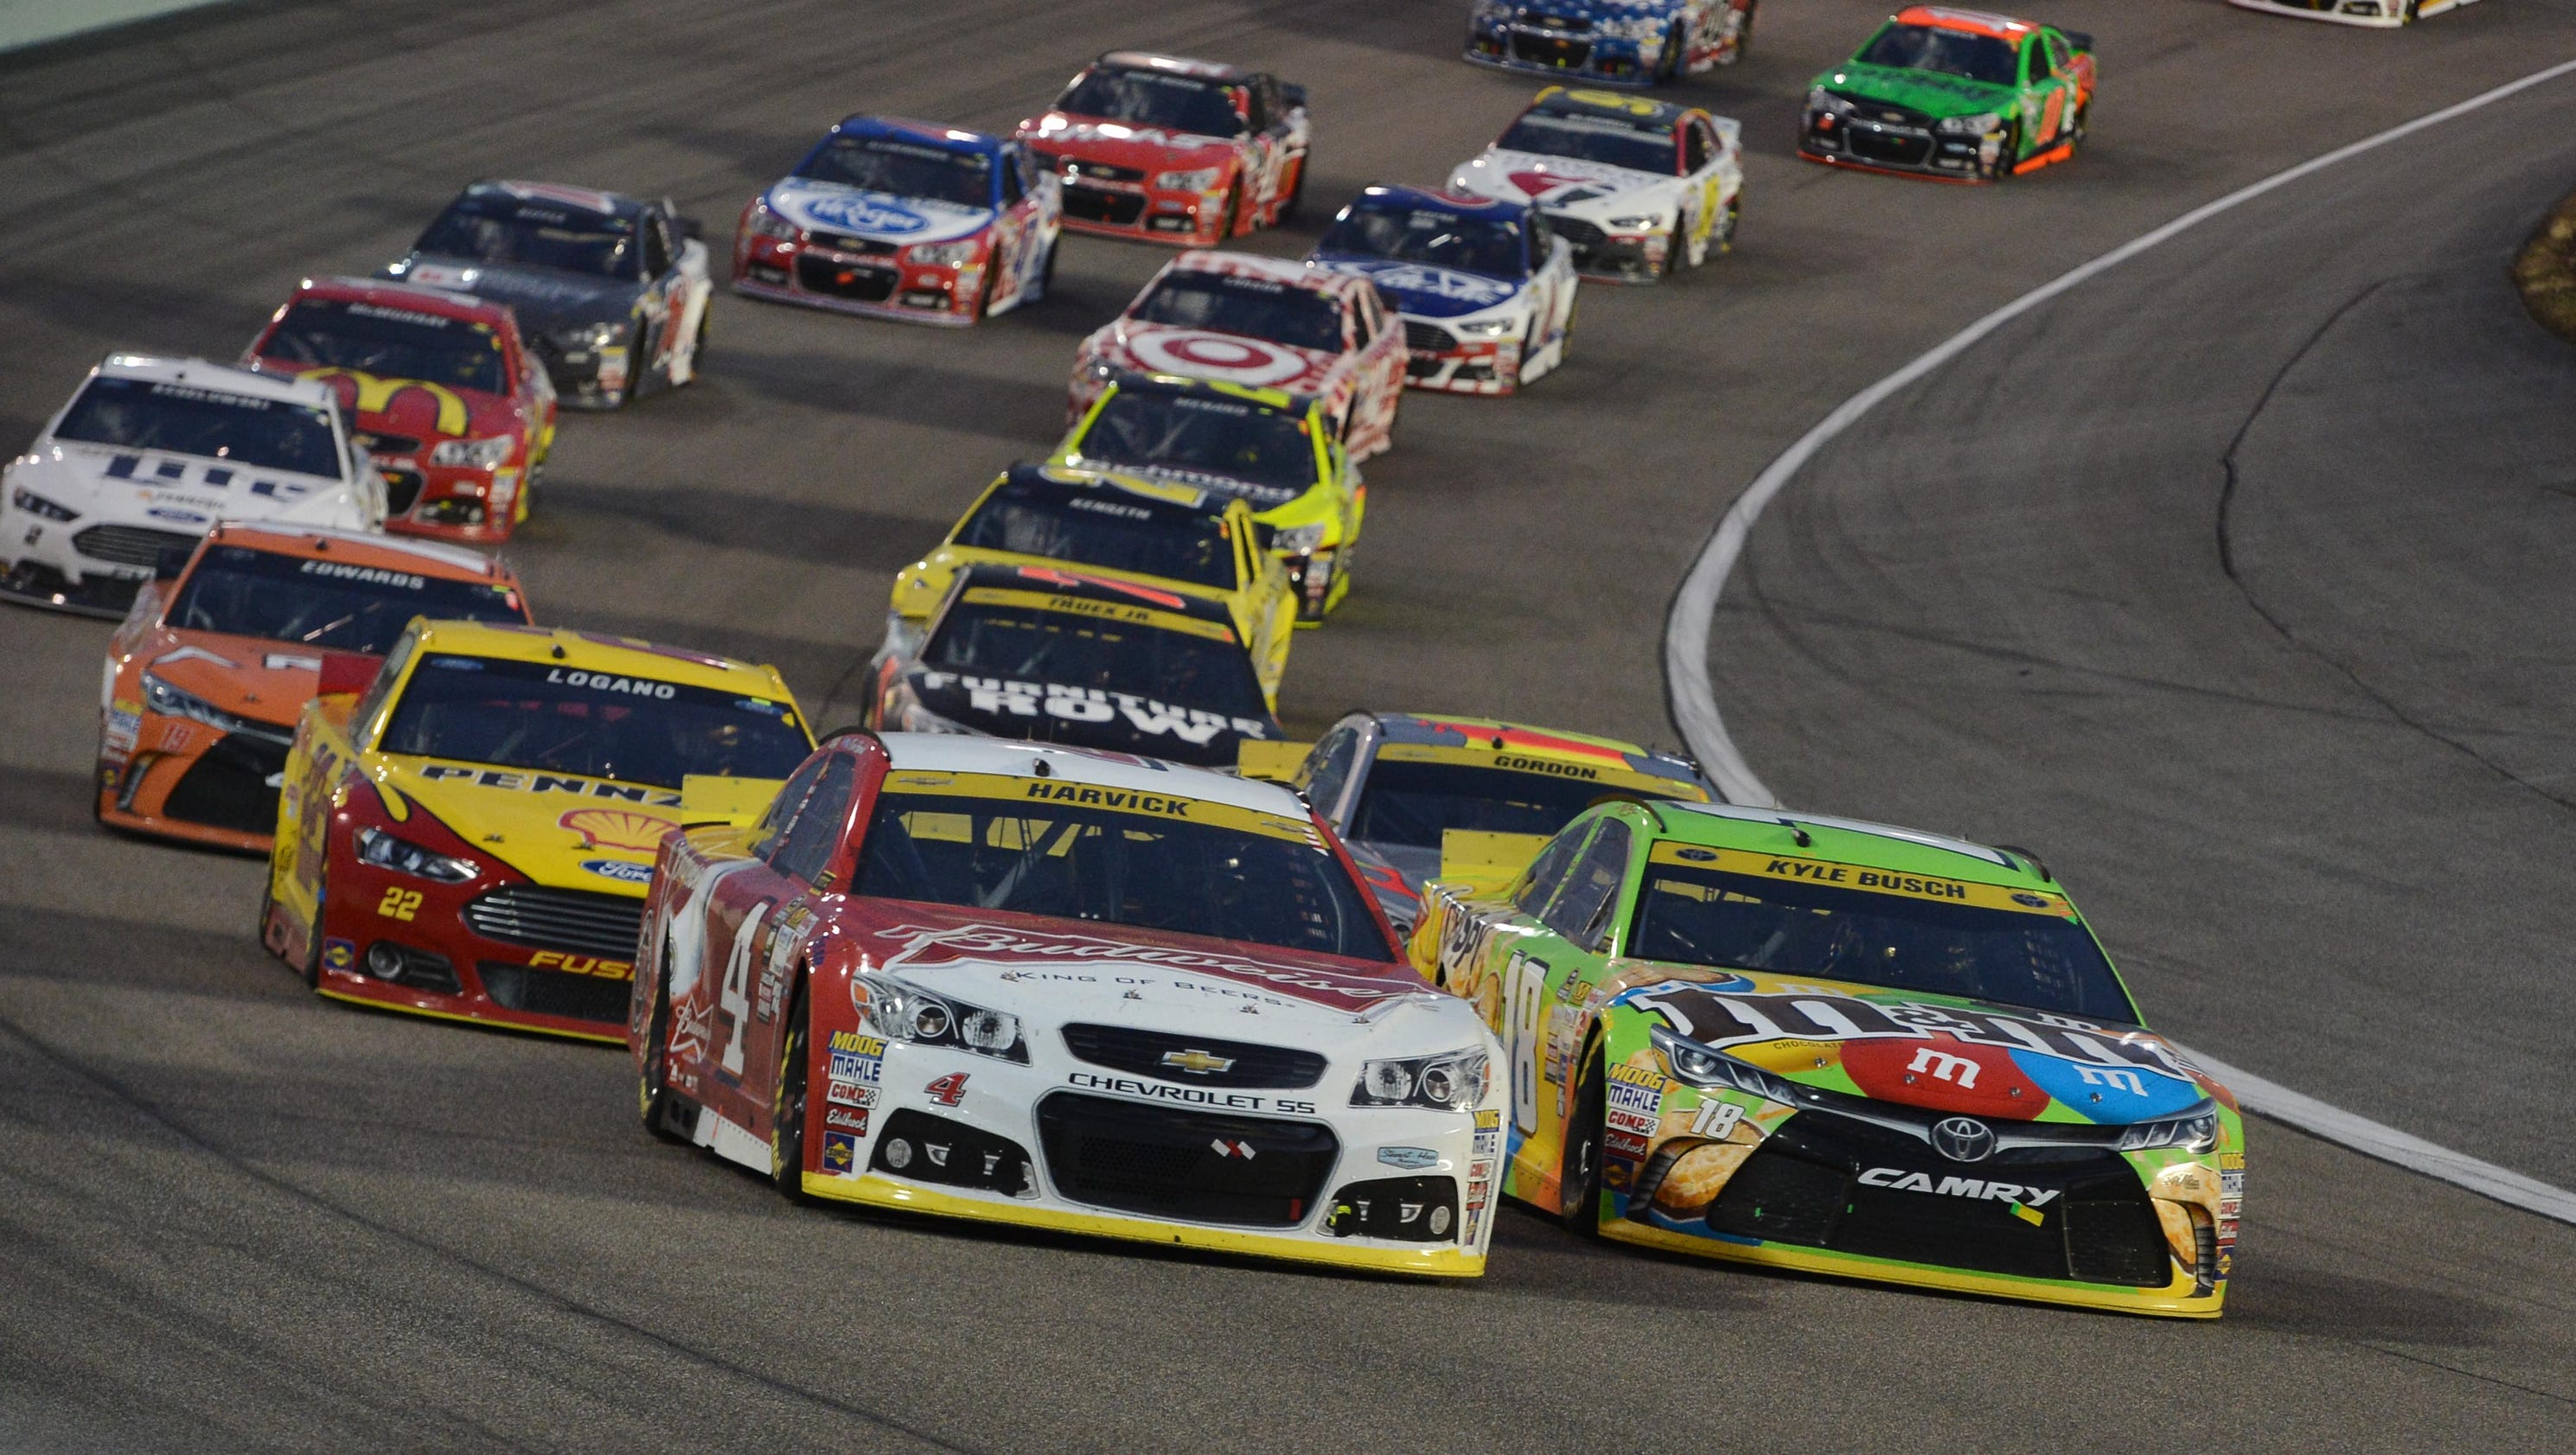 Top 10 Sprint Cup : Kevin harvick comes up just short of defending his